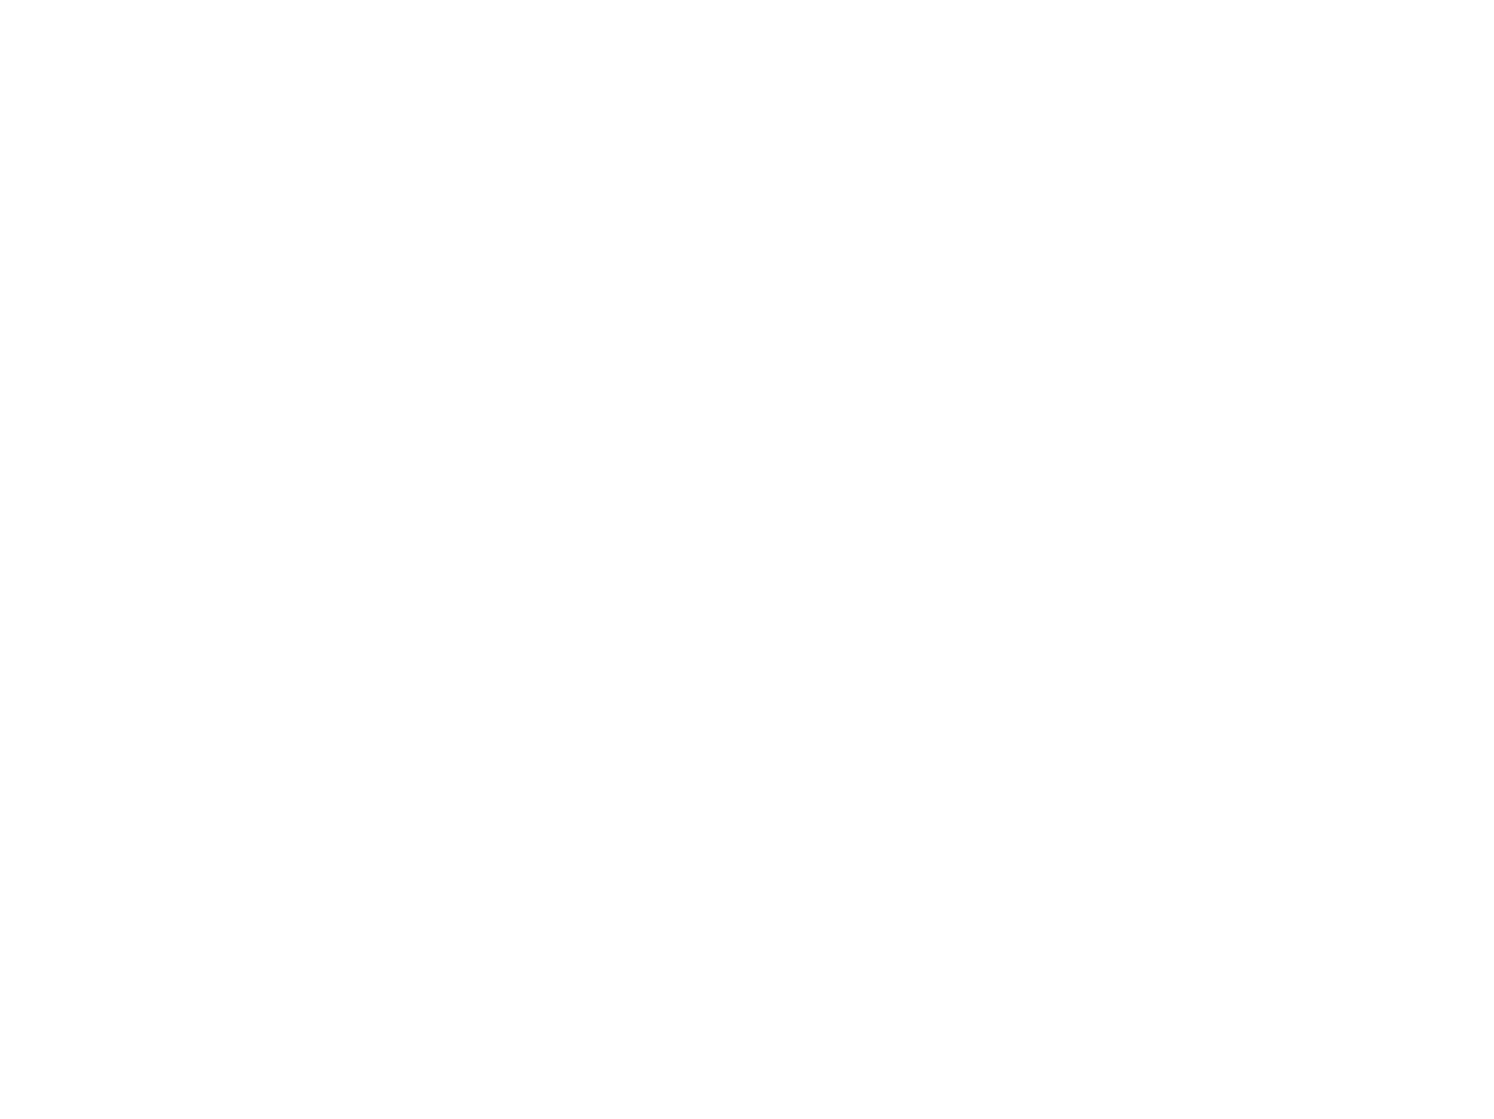 formationscoursdanglais-2